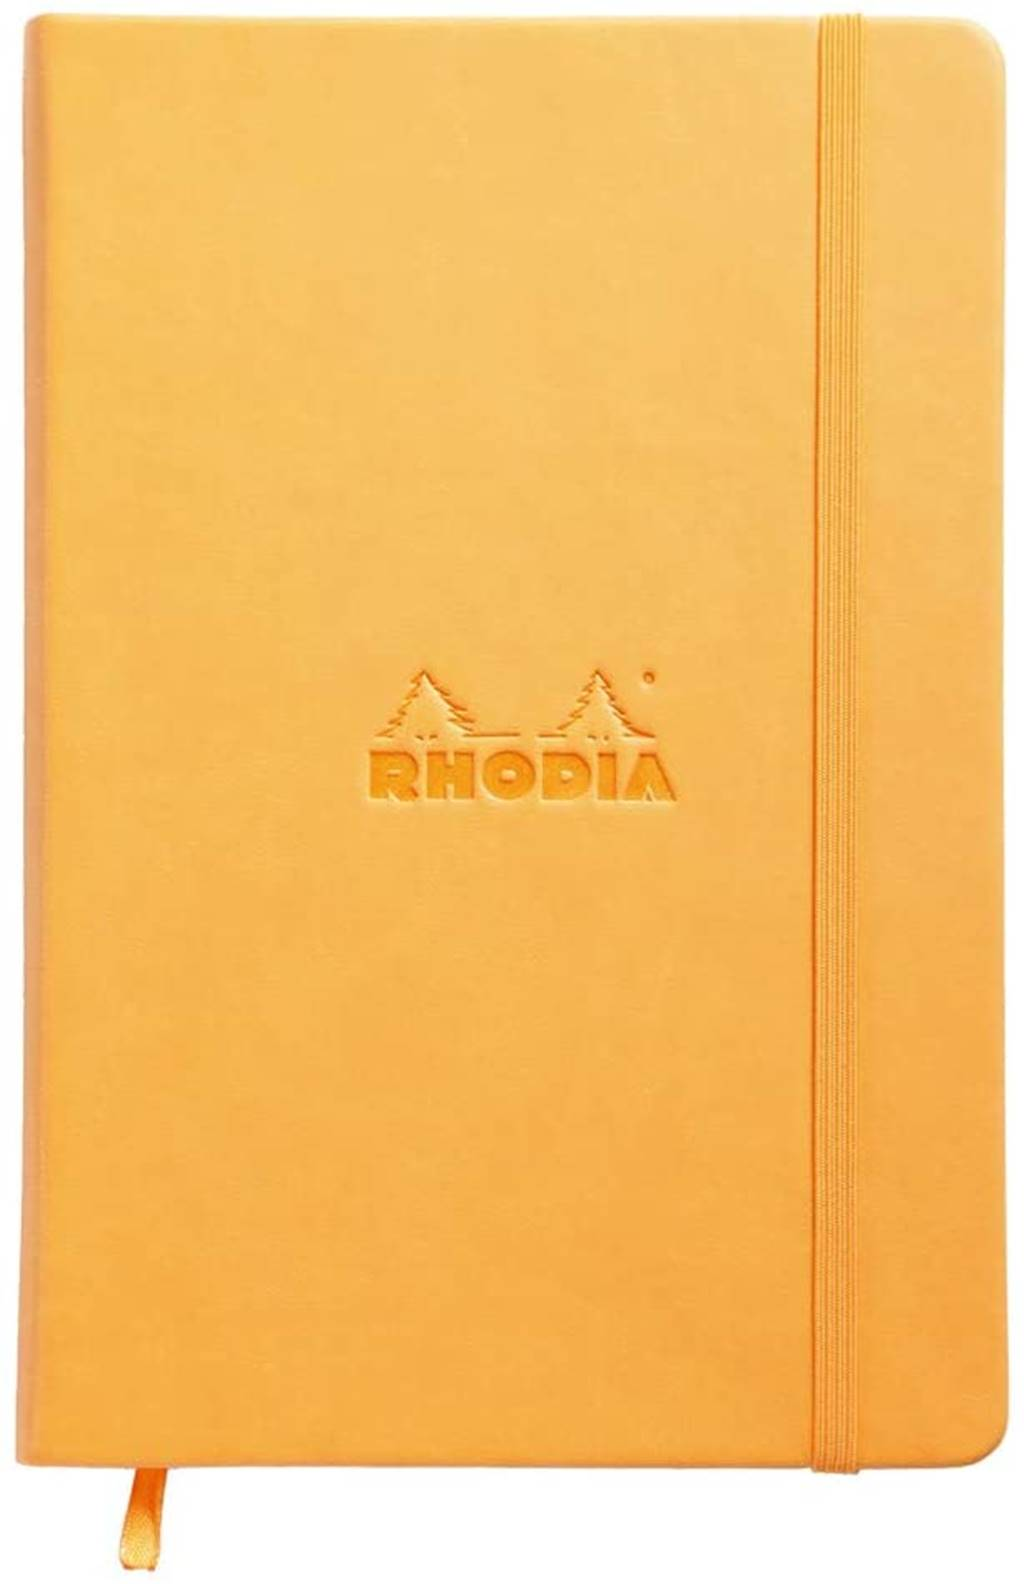 Rhodia web notebook Orange Italian imitation cover ruled lines